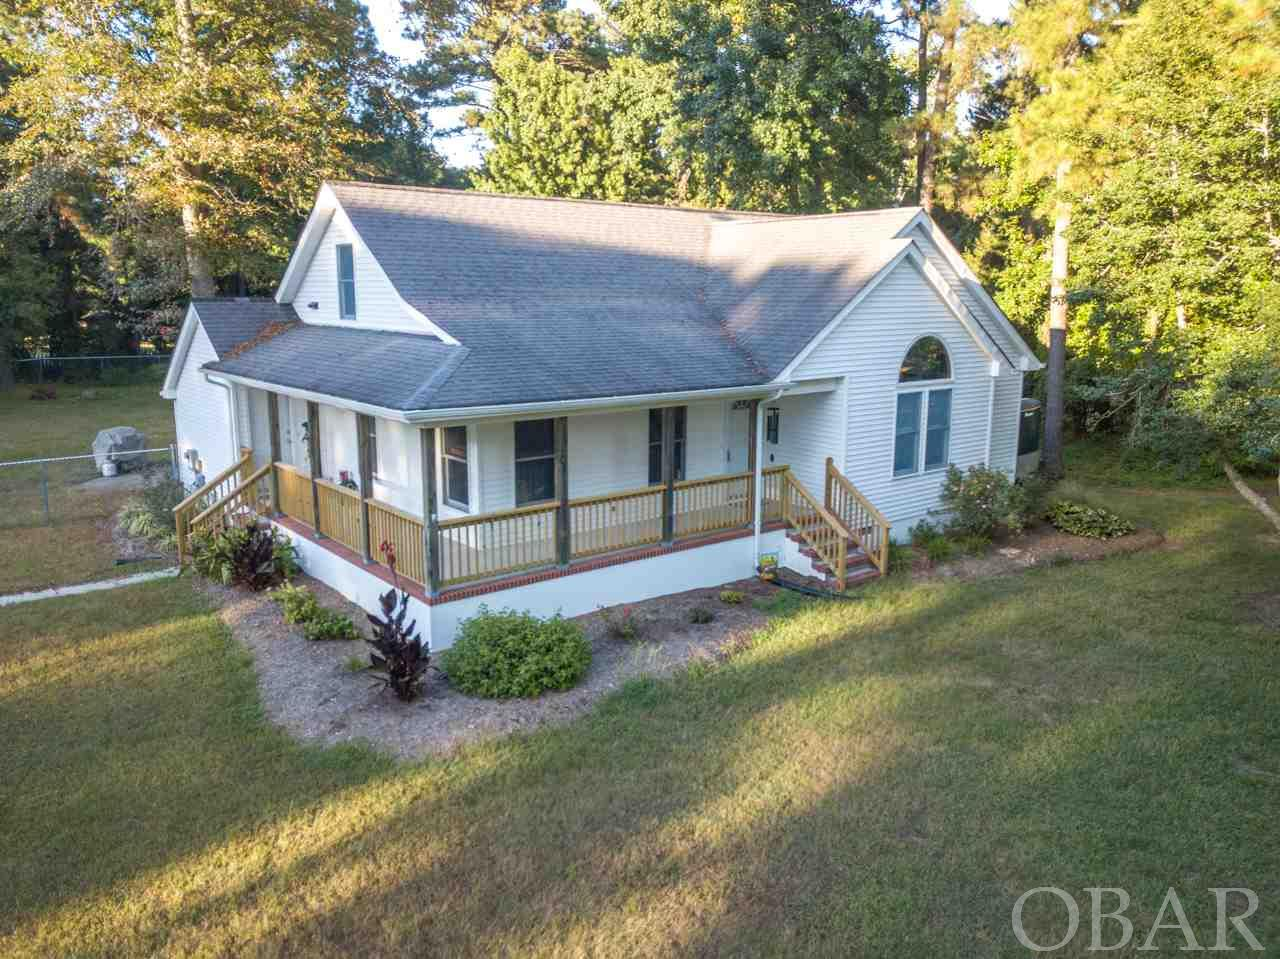 109 Arnold Drive, Powells Point, NC 27966, 3 Bedrooms Bedrooms, ,2 BathroomsBathrooms,Residential,For sale,Arnold Drive,101874